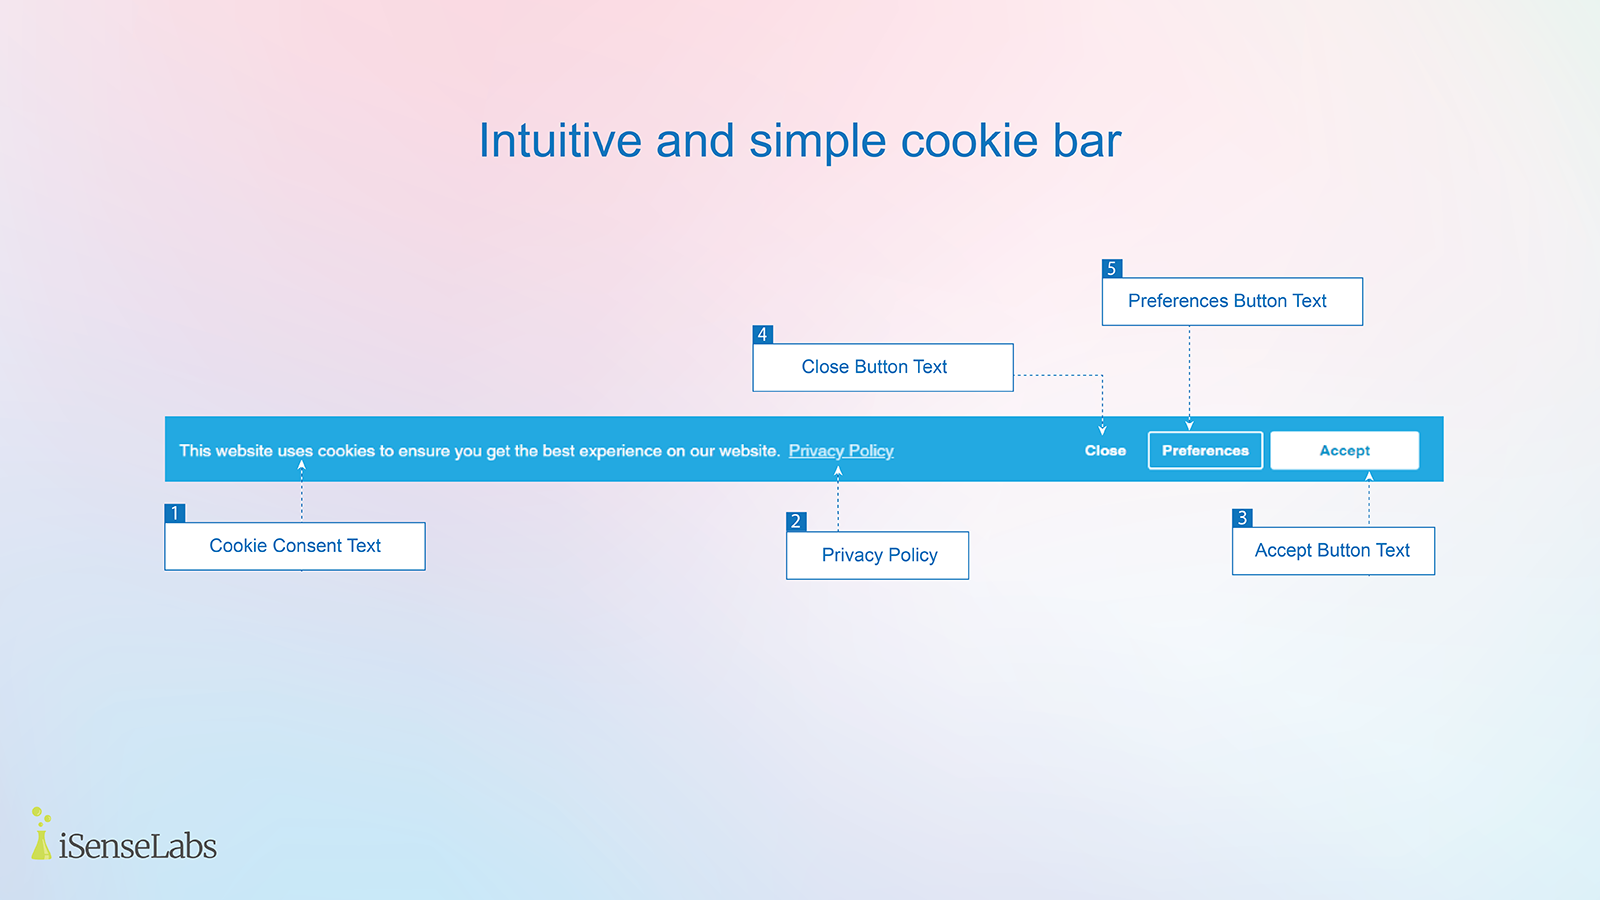 Stylish GDPR/CCPA cookie bar in action